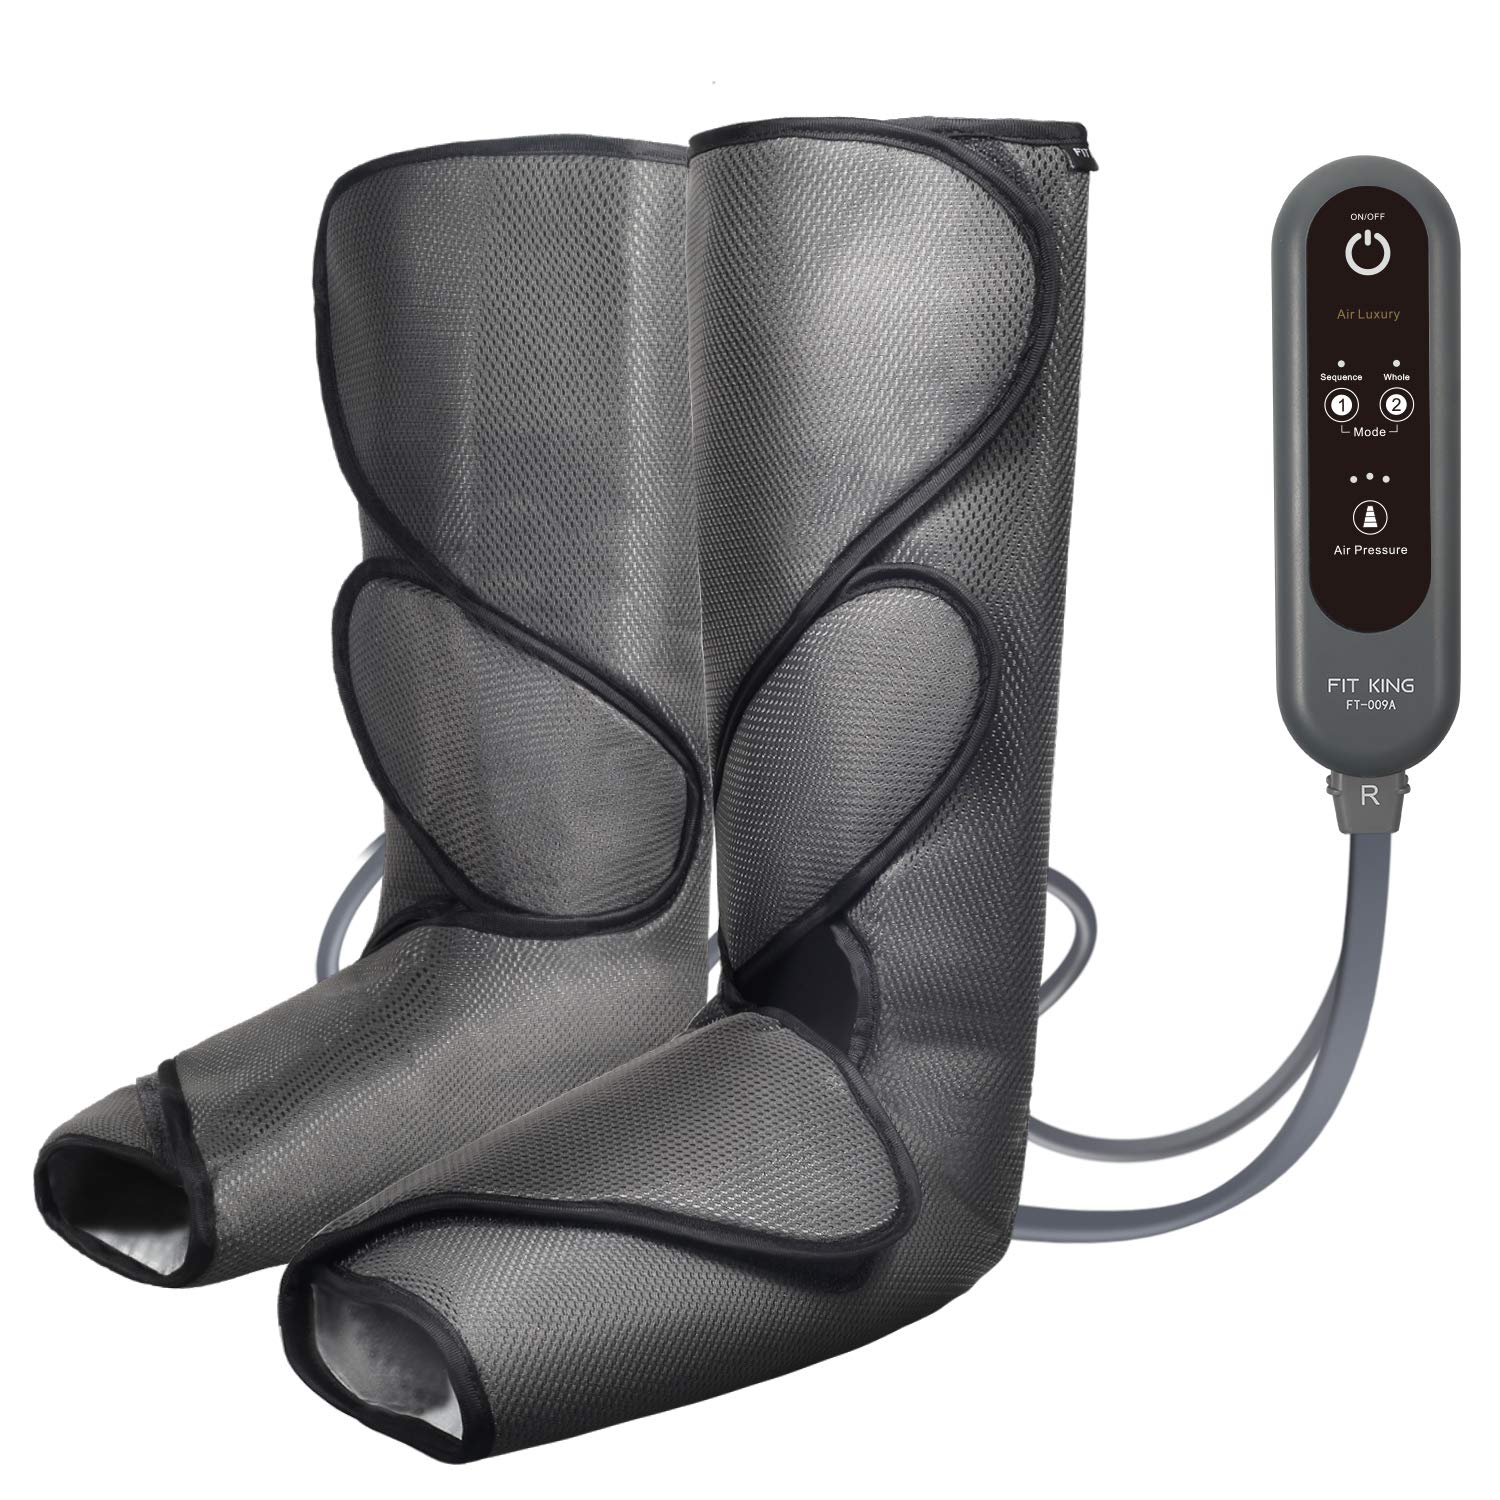 FIT KING Leg Air Massager for Circulation and Relaxation Foot and Calf Massage with Handheld Controller 3 Intensities 2 Modes(with 2 Extensions) by FIT KING